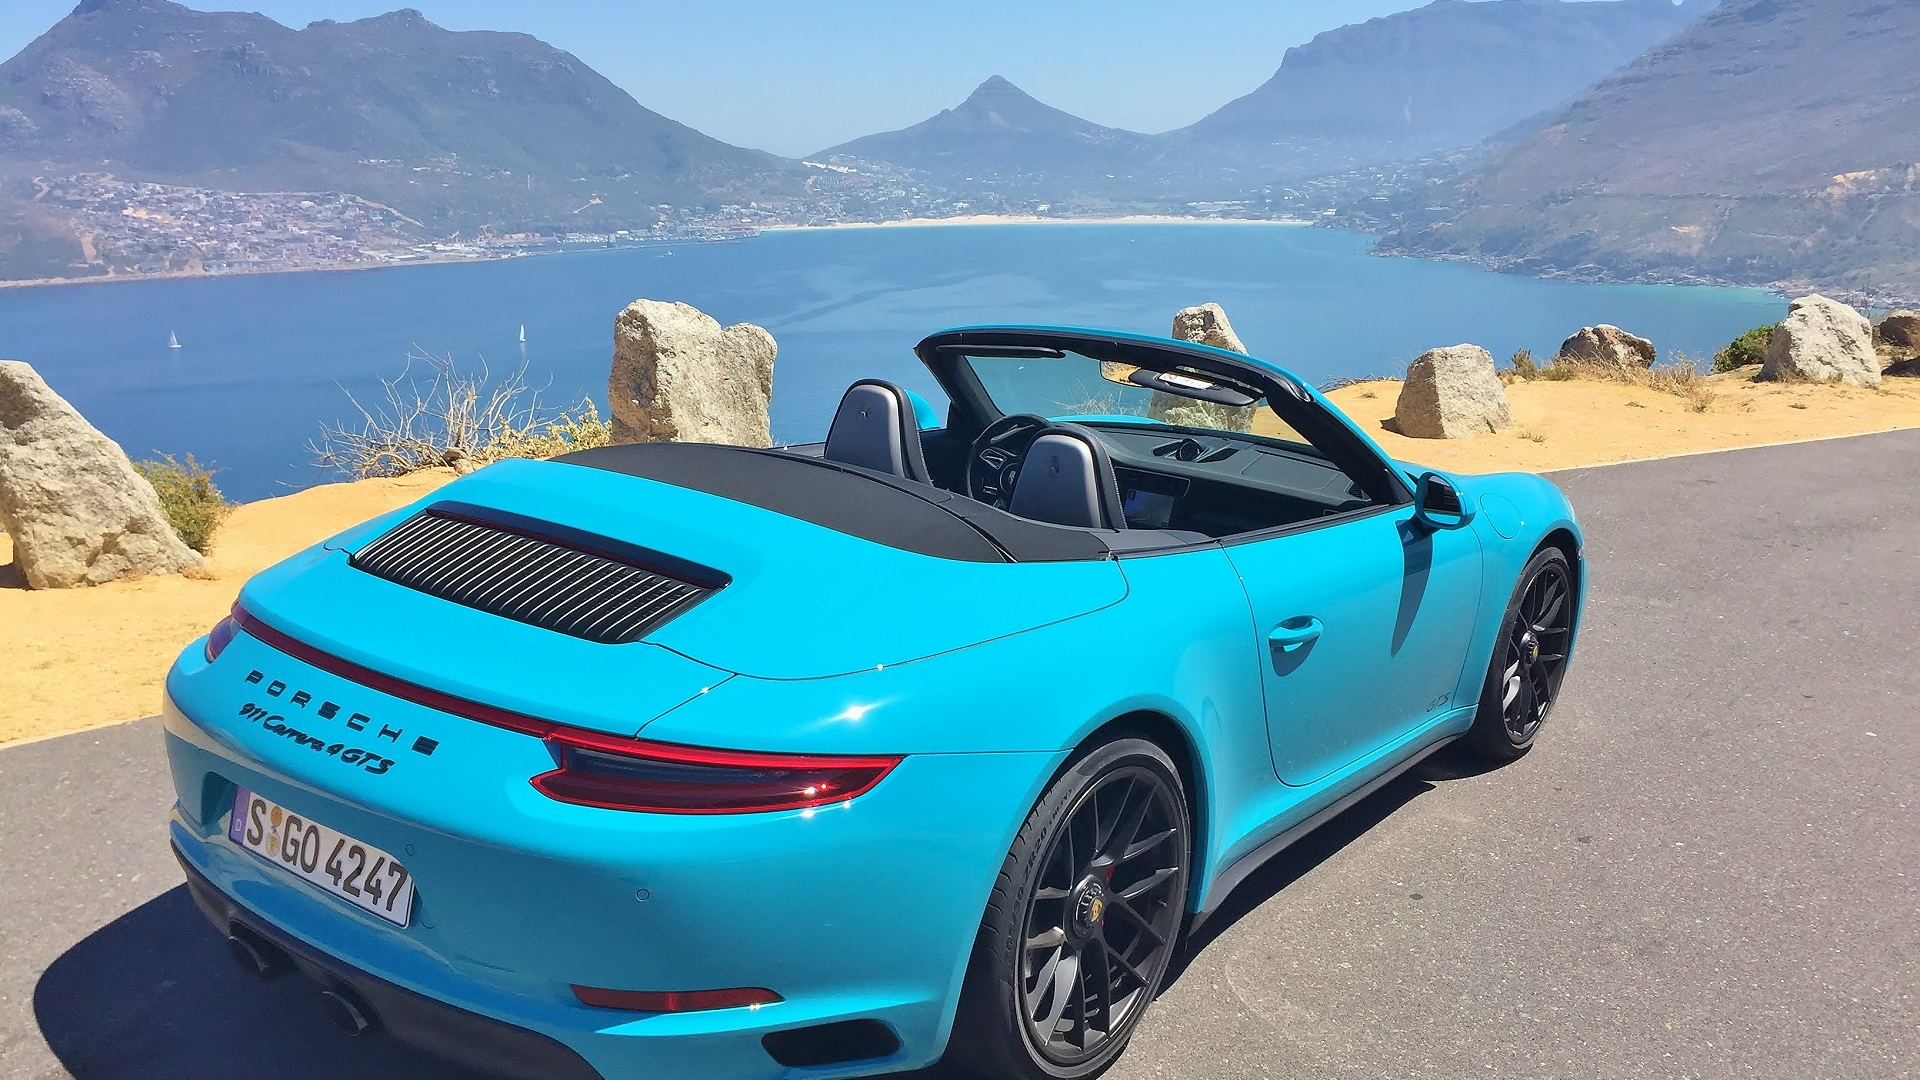 2017 Porsche 911 Carrera GTS Media Drive, Cape Town, South Africa, January 2017